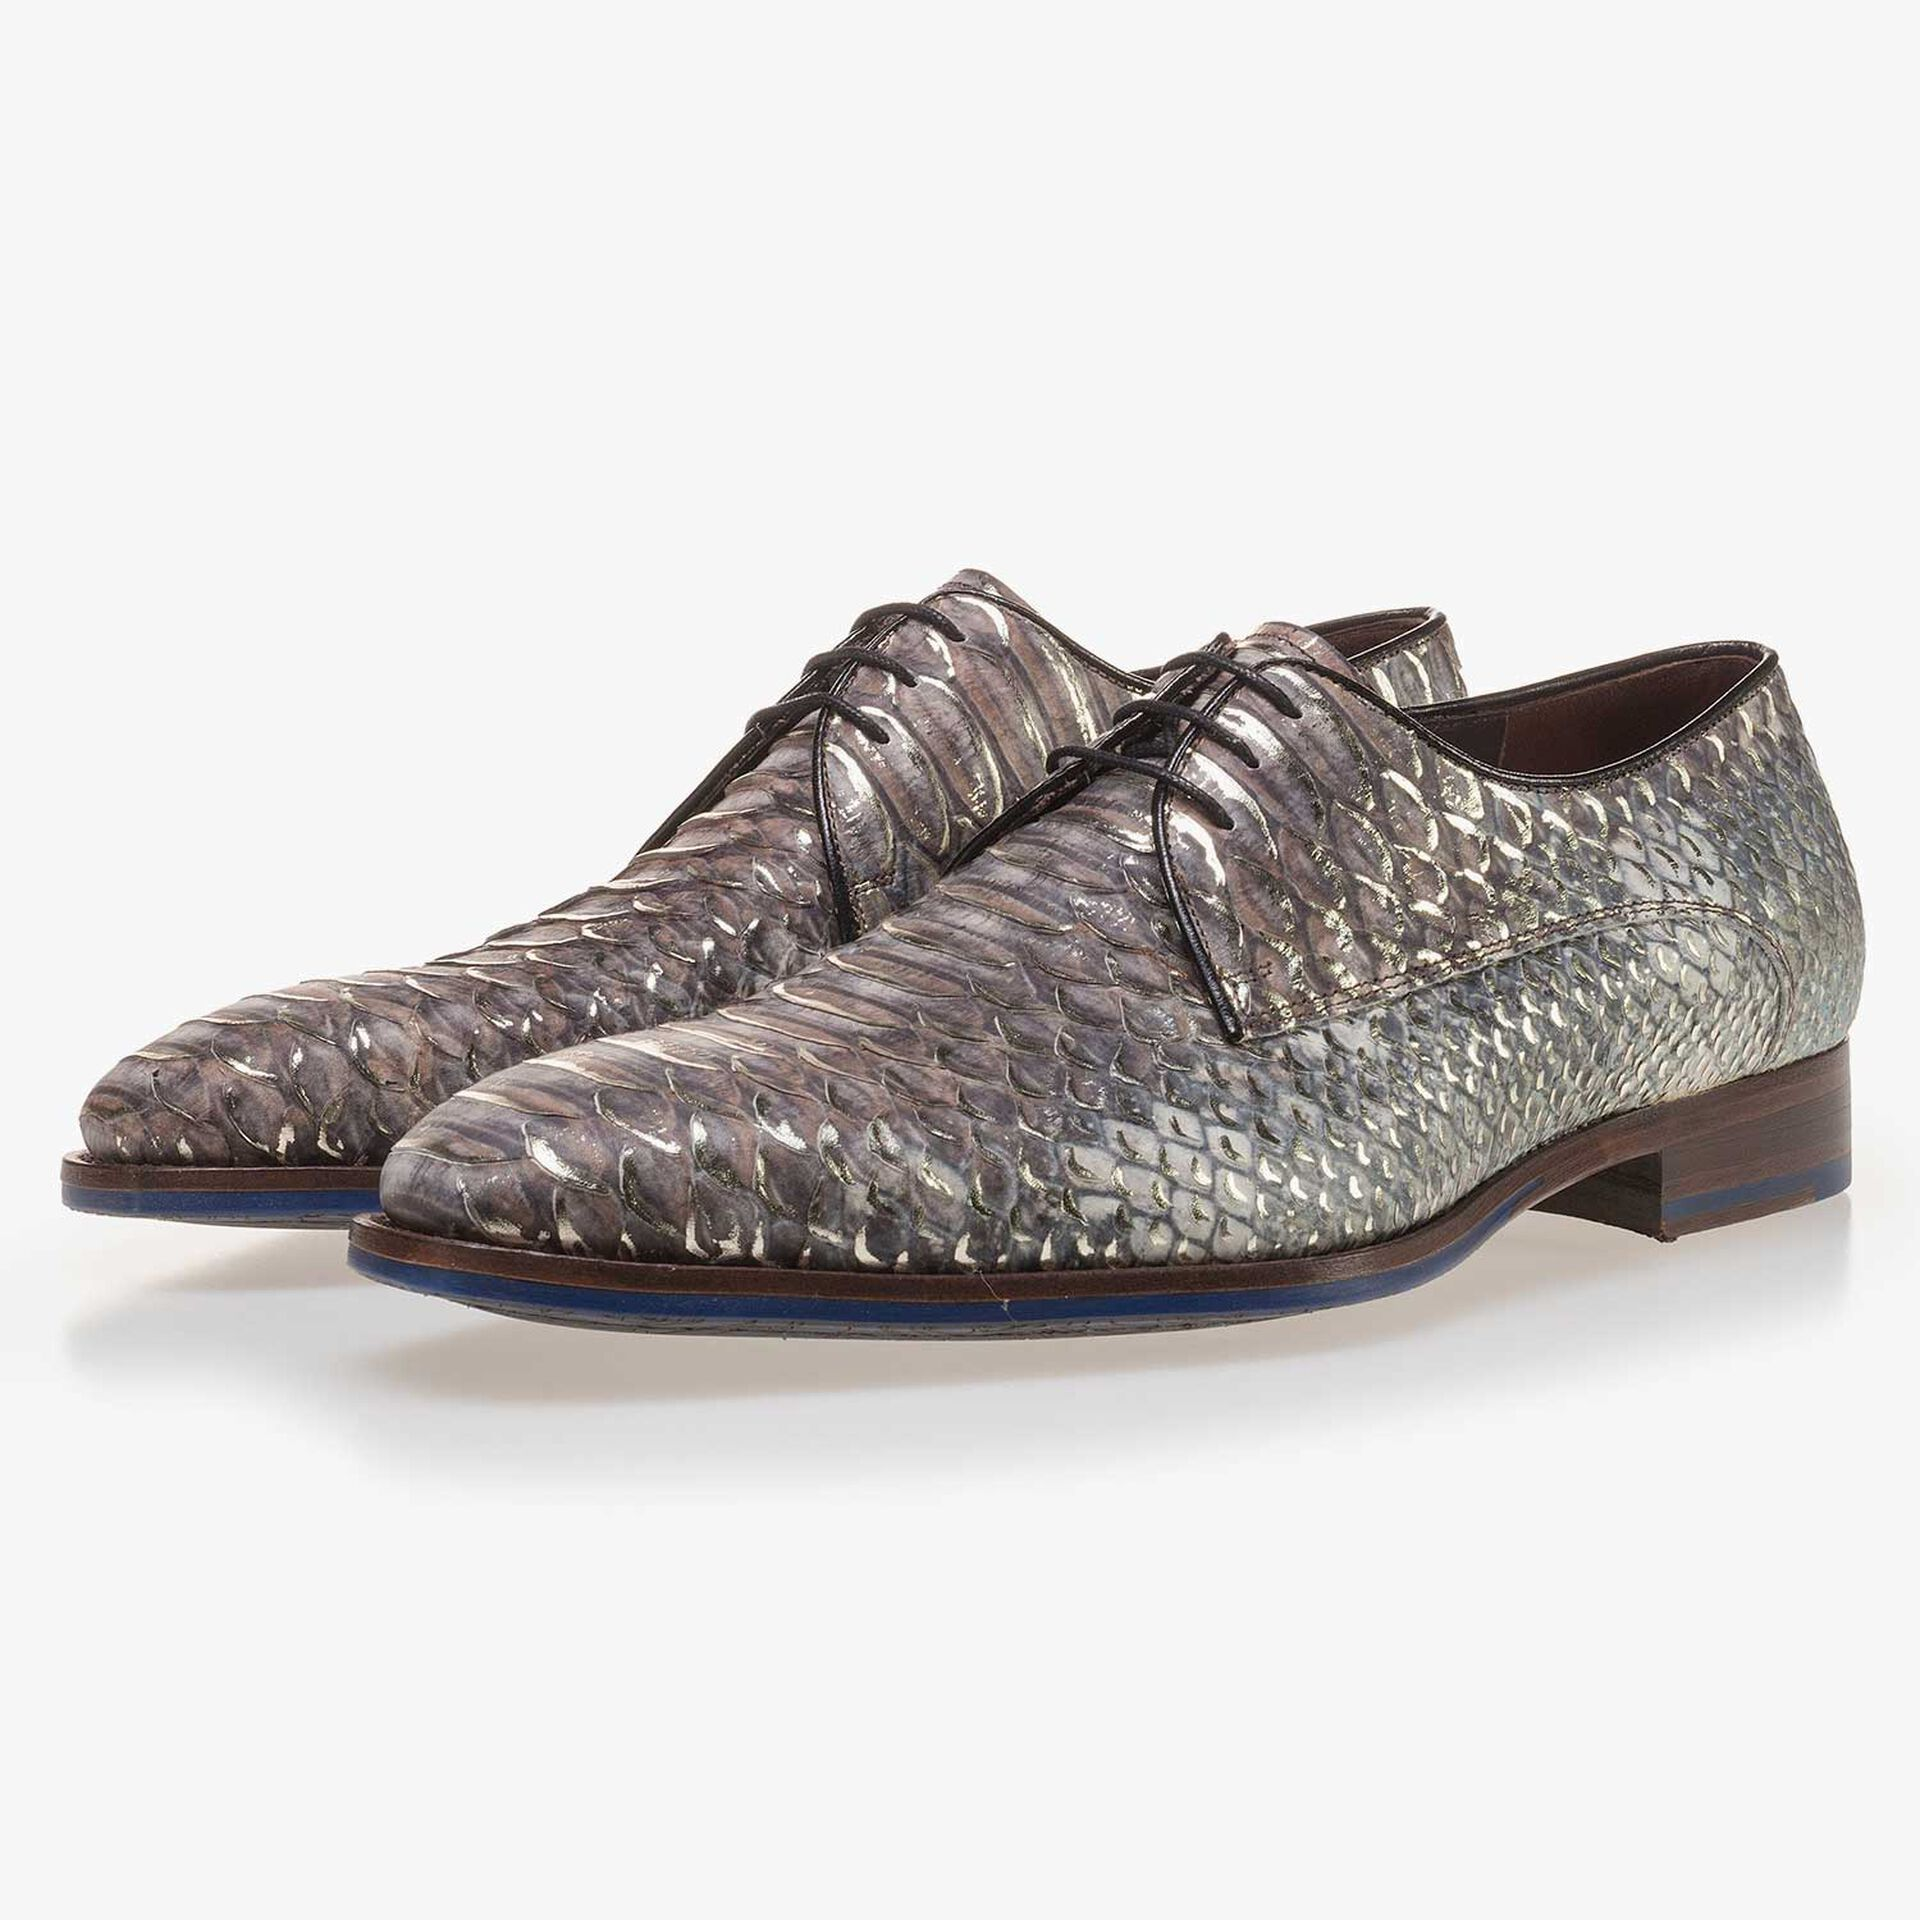 Taupe-coloured leather lace shoe finished with a snake print